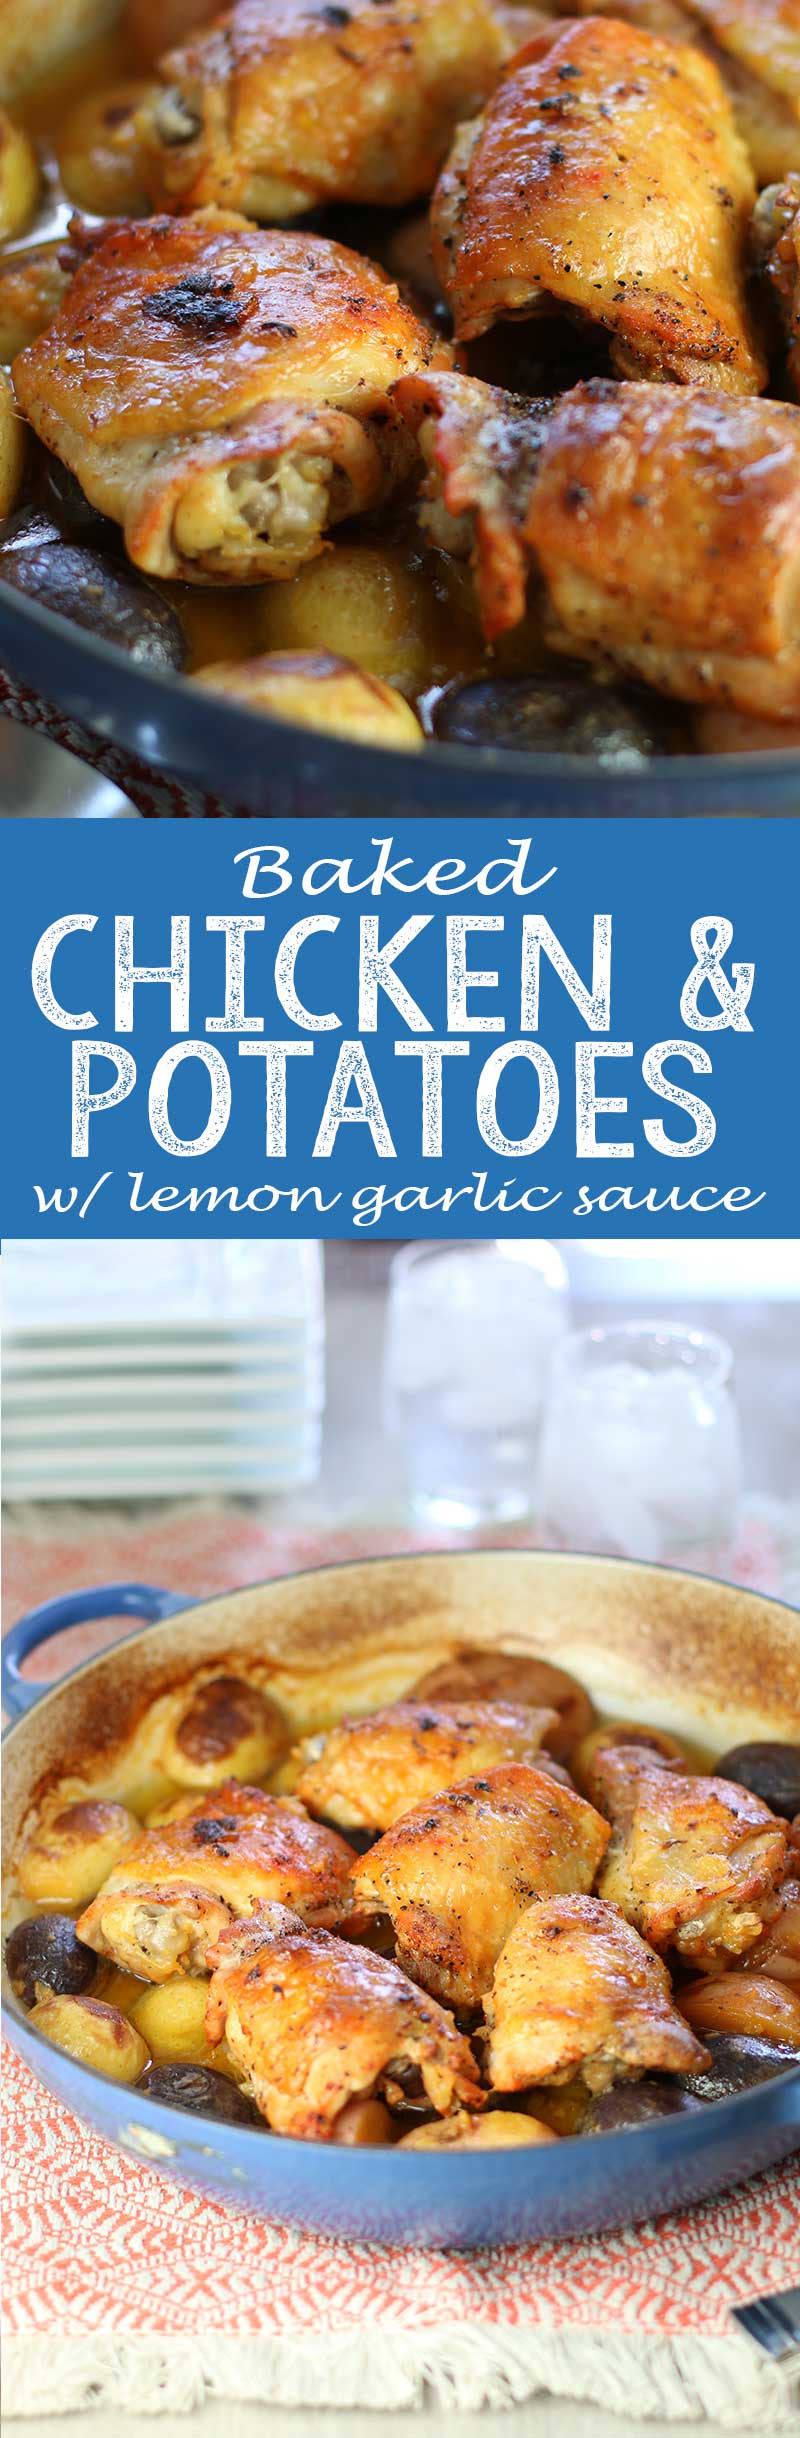 Chicken and Potatoes with lemon garlic sauce